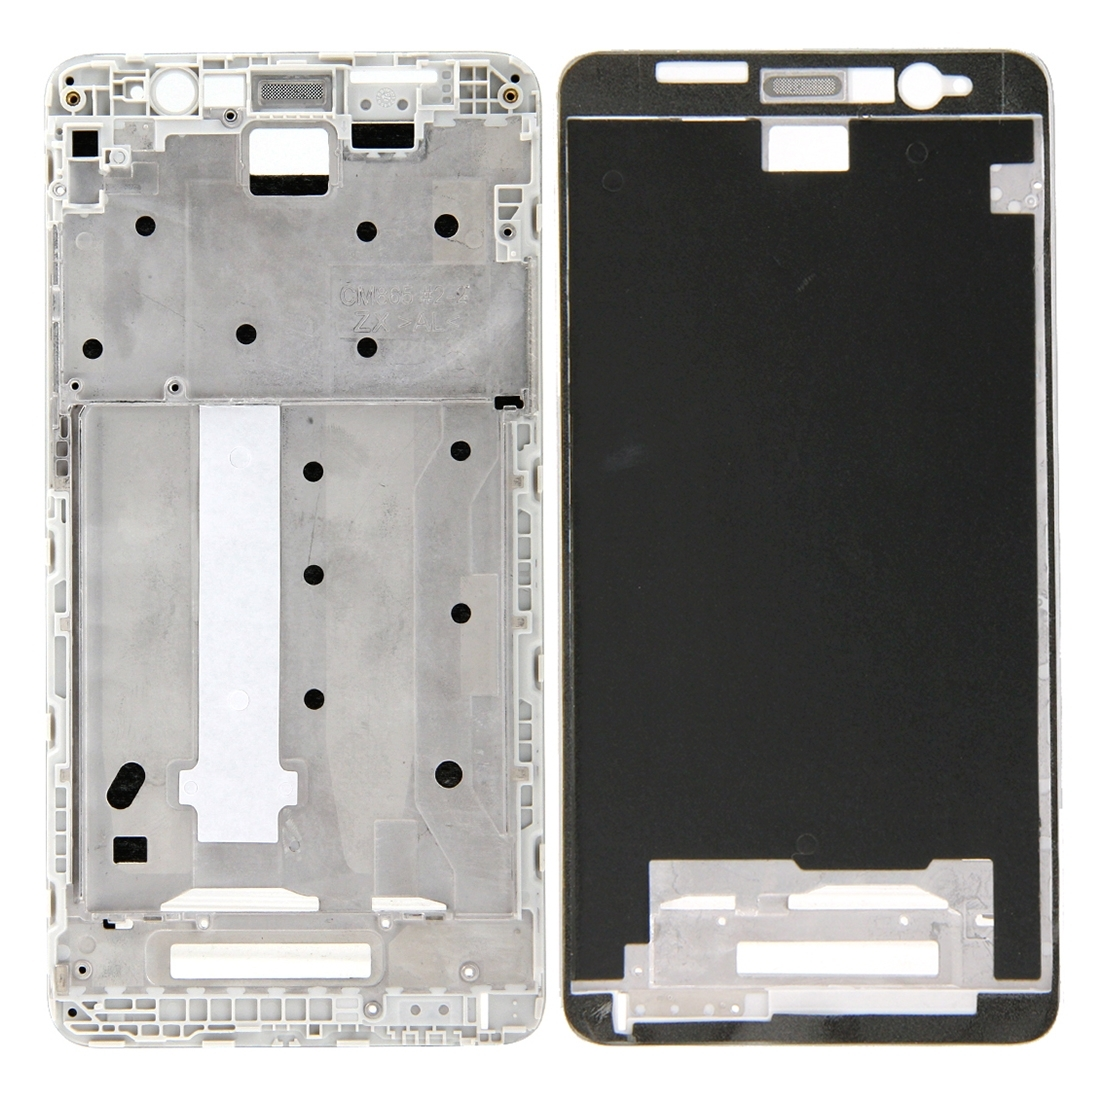 Original Xiaomi Redmi Note 3 LCD Display Frame Bezel Plate Replacement For Xiaomi Redmi Note 3 Note3 Replacement Repair Parts